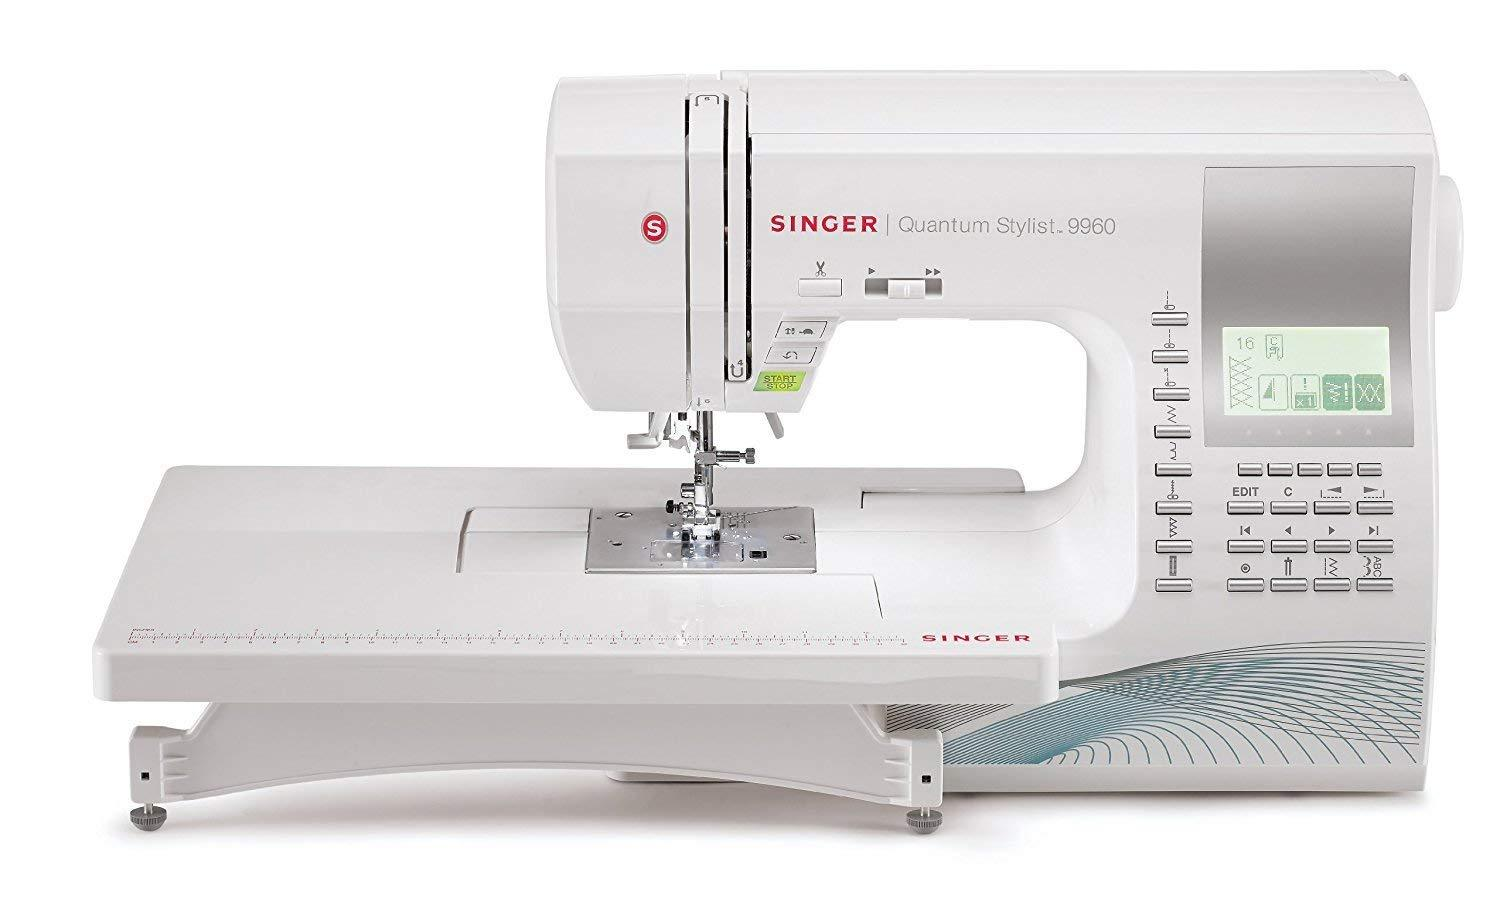 Singer Quantum Stylist 9960 - Good as New